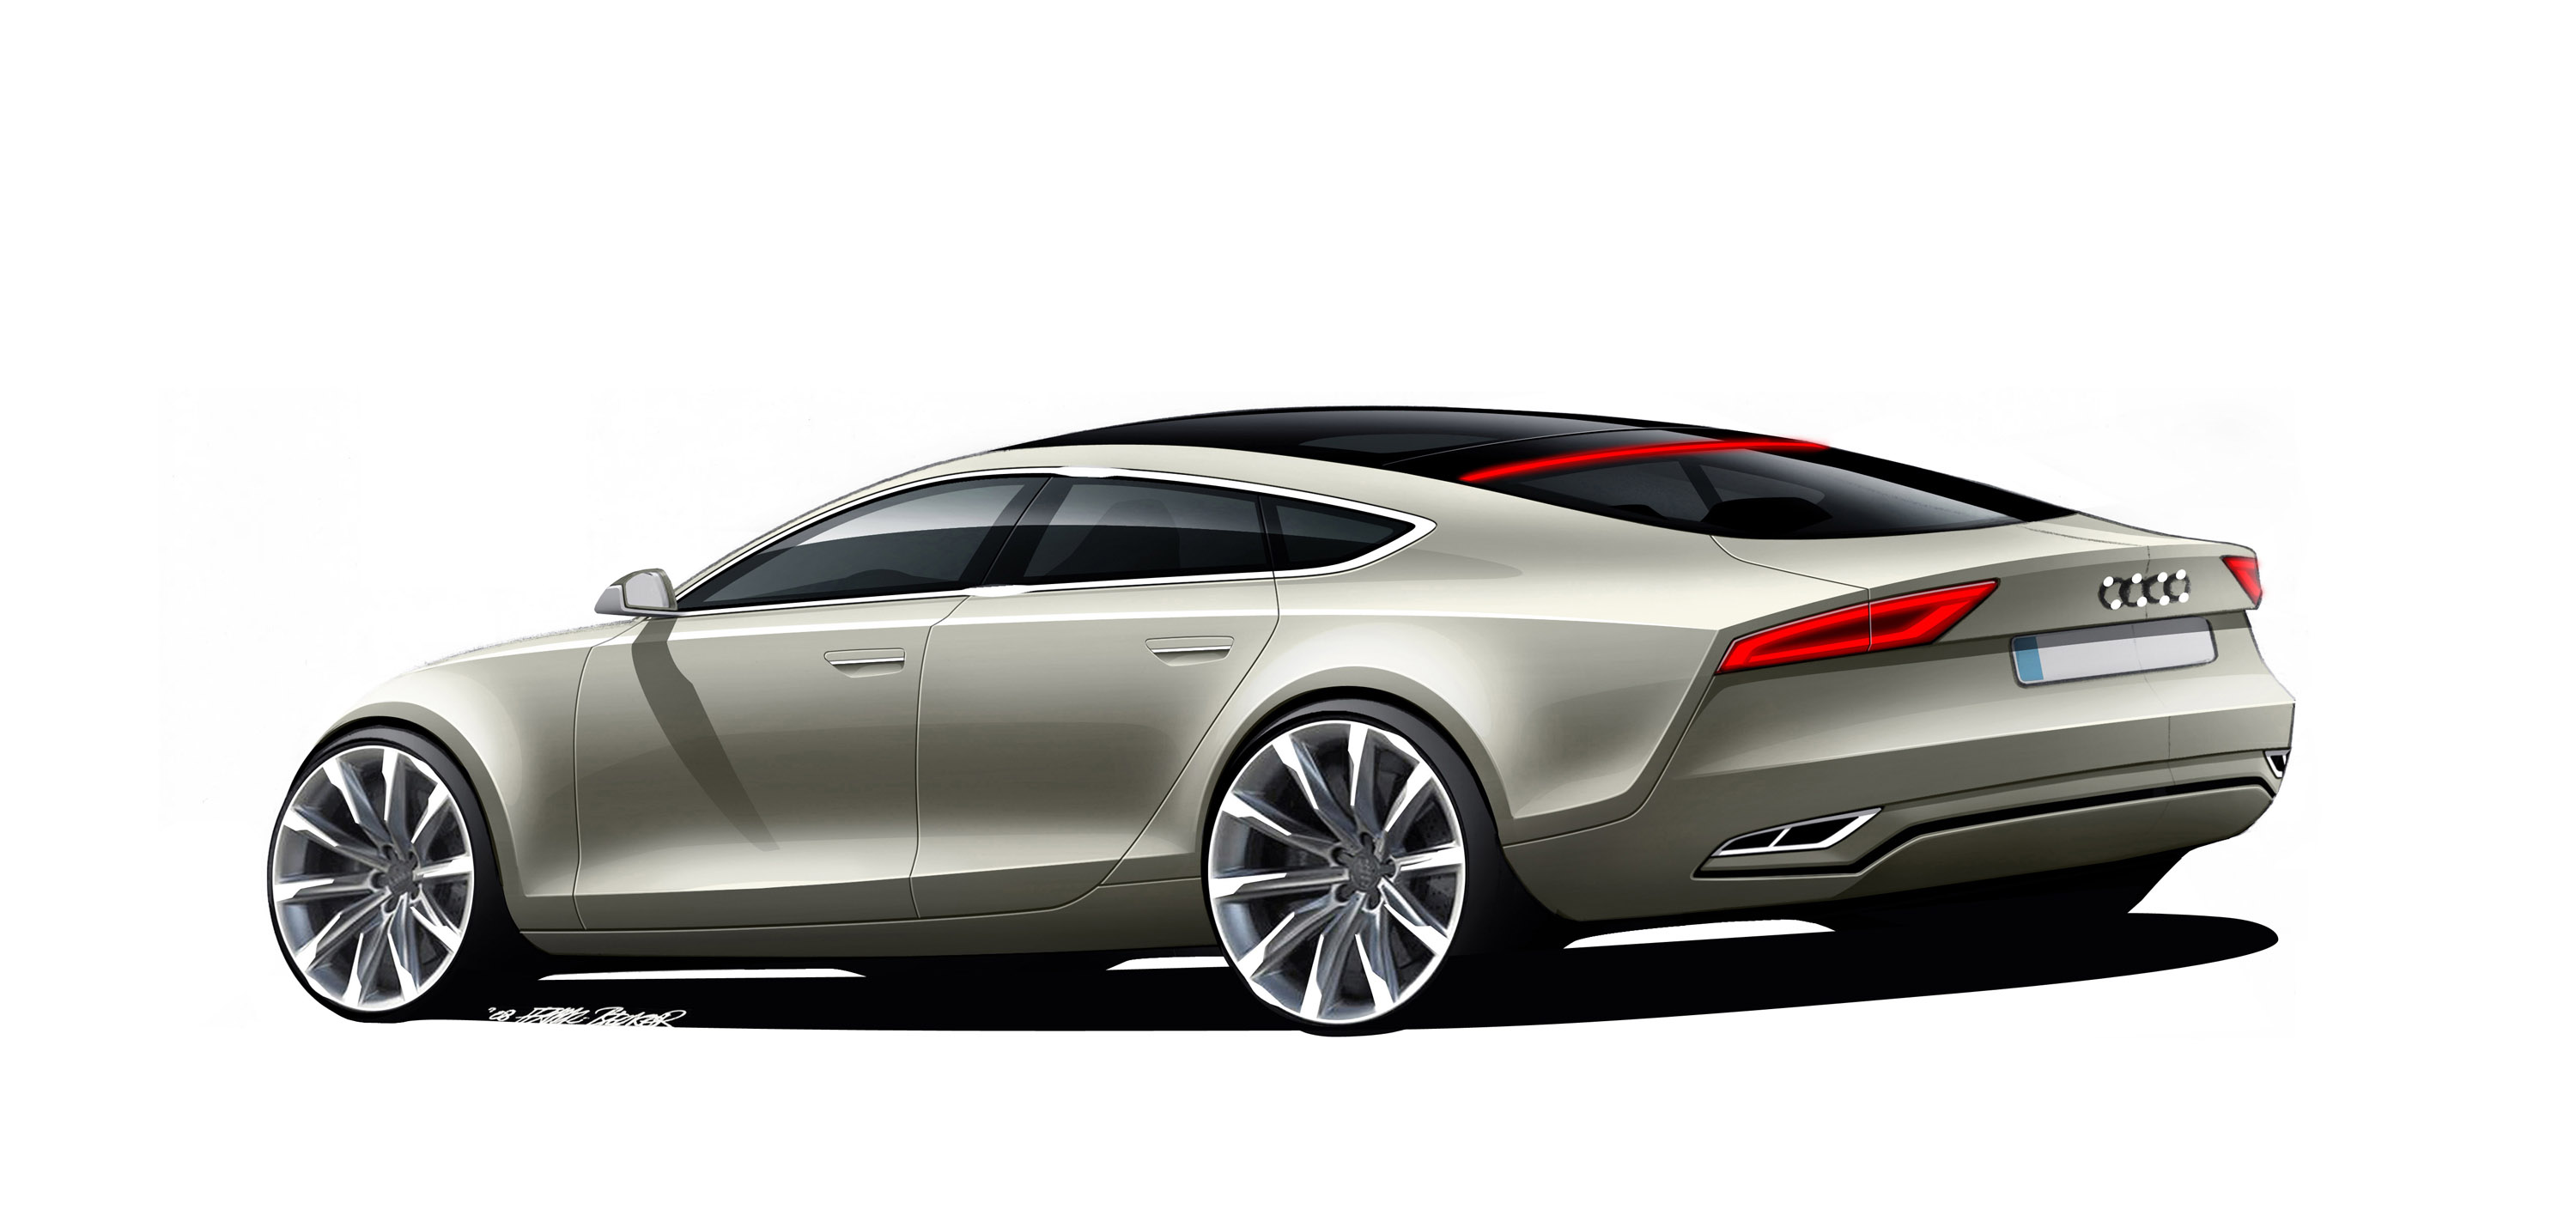 Audi A7 Sportback Concept Collection 13 Wallpapers